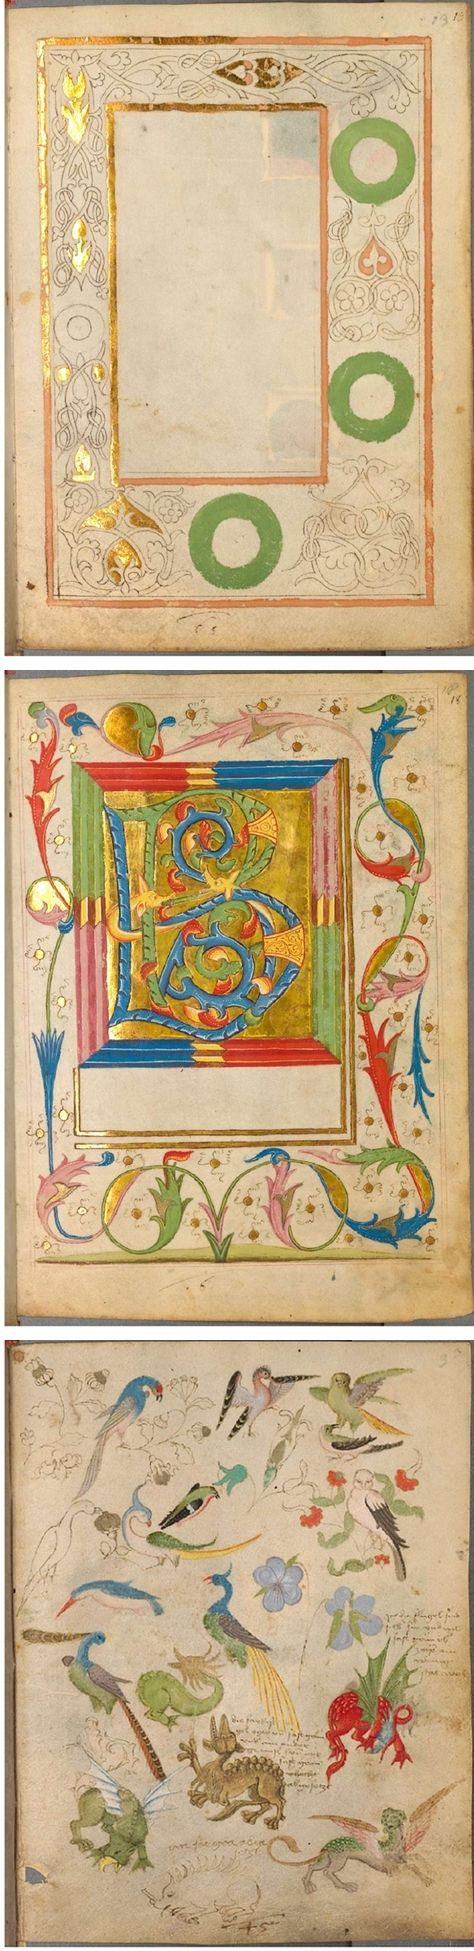 The Illuminated Sketchbook of Stephan Schriber, c.1494.  Selected pages from the Spätgotisches Musterbuch des Stephan Schriber, a C15 century monk working in South-West Germany.